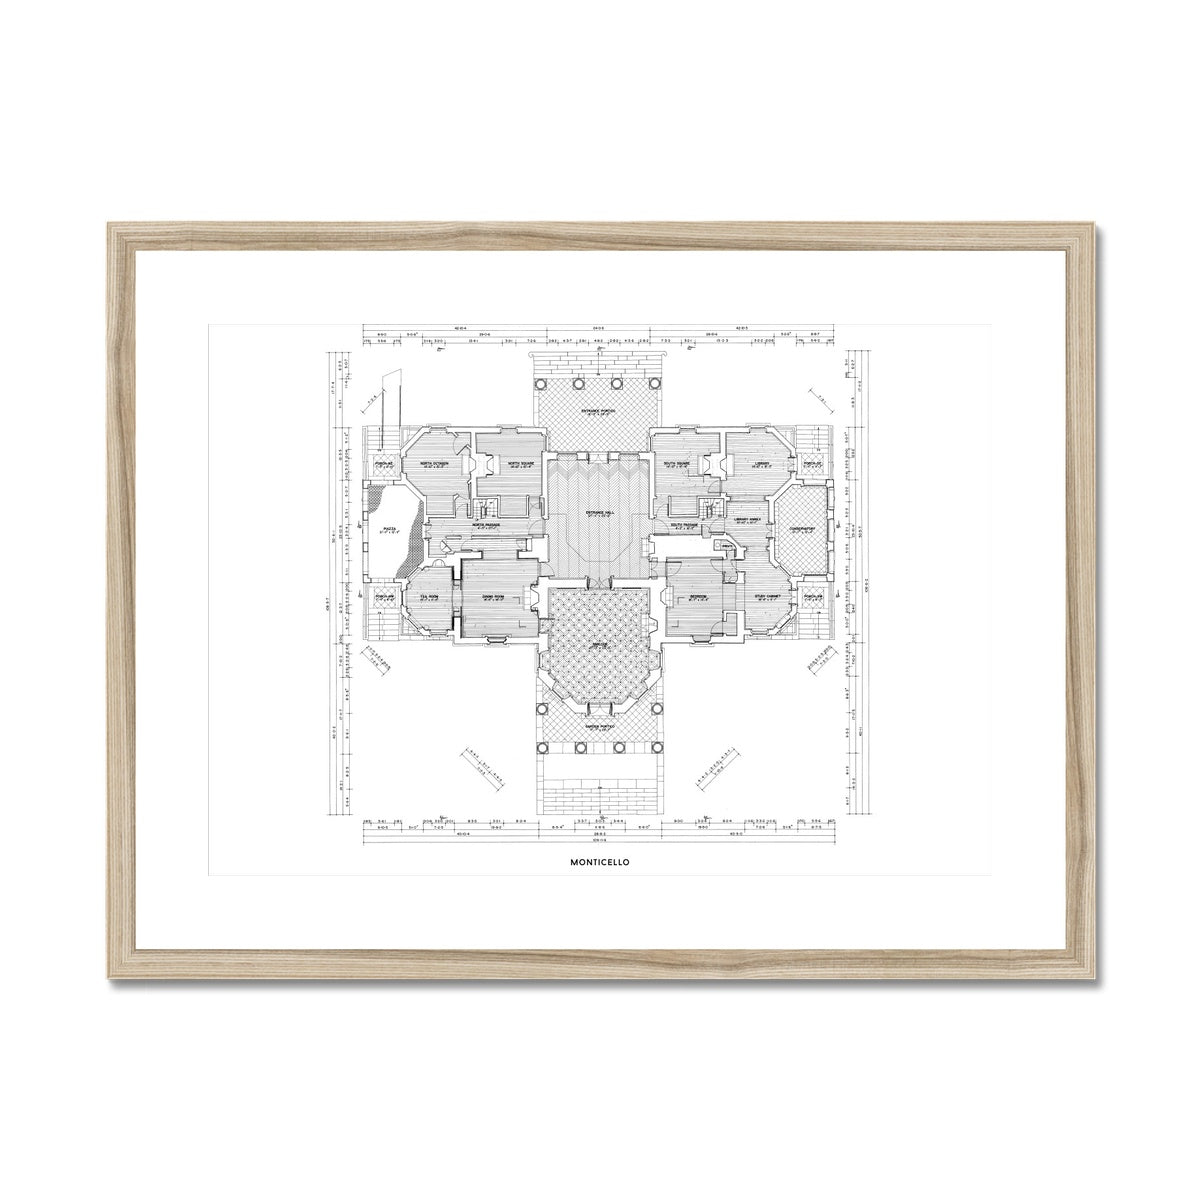 Monticello - First Floor Plan - White -  Framed & Mounted Print